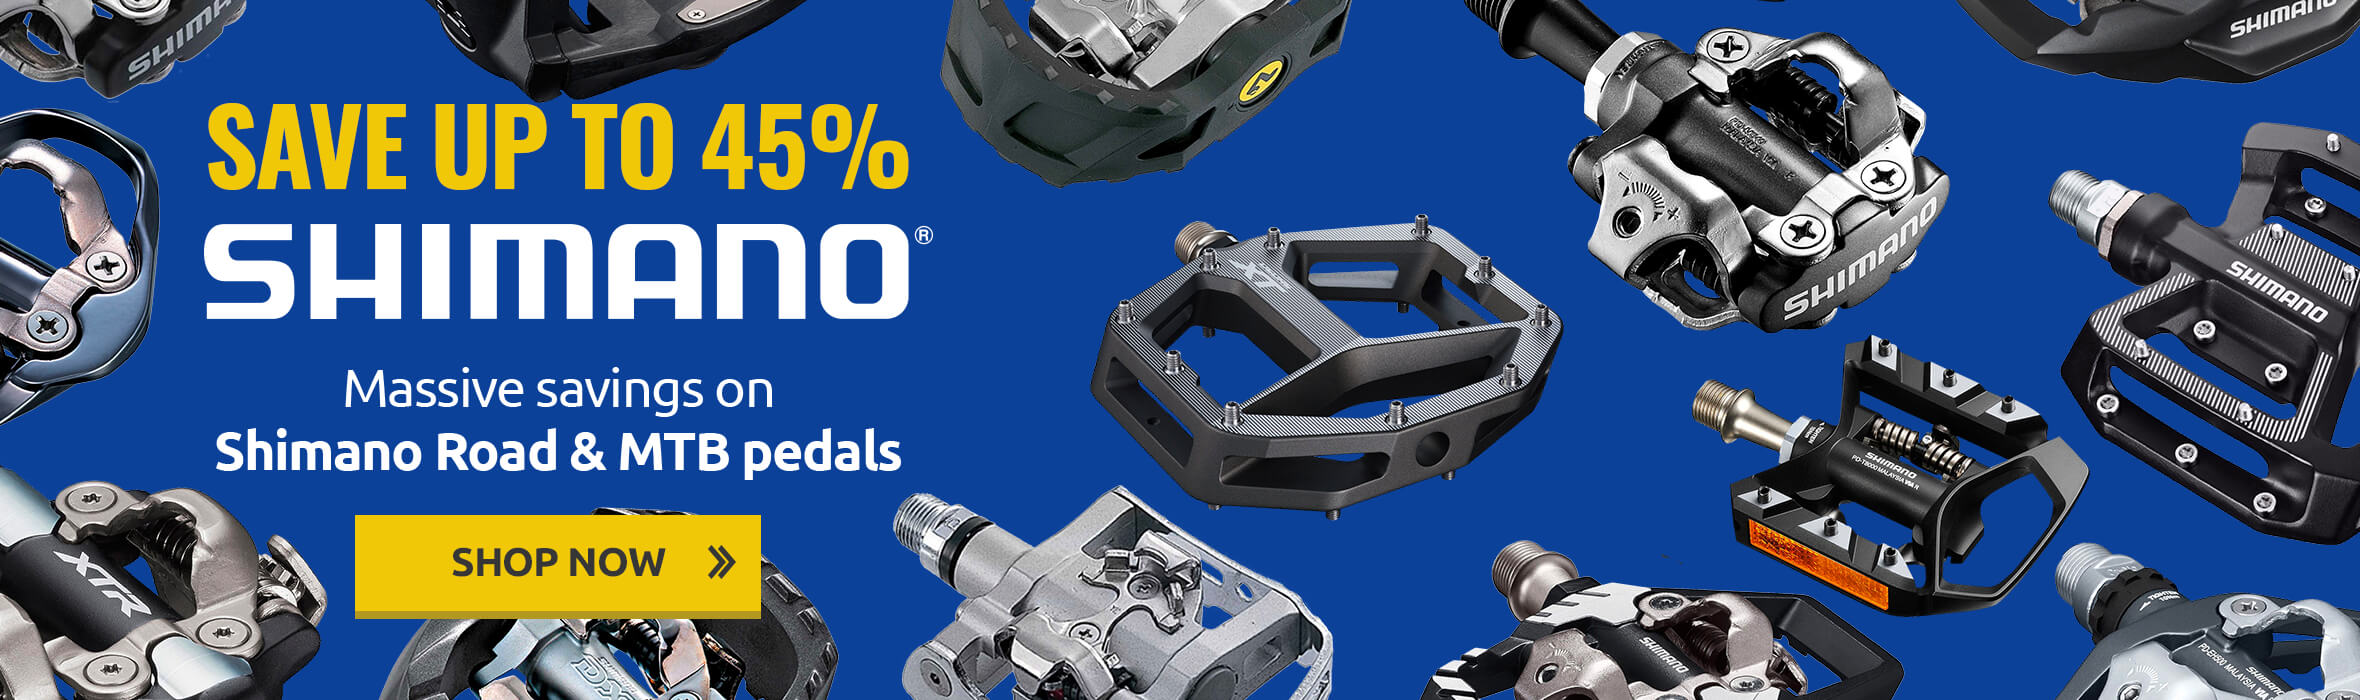 Save up to 45% on Shimano Pedals